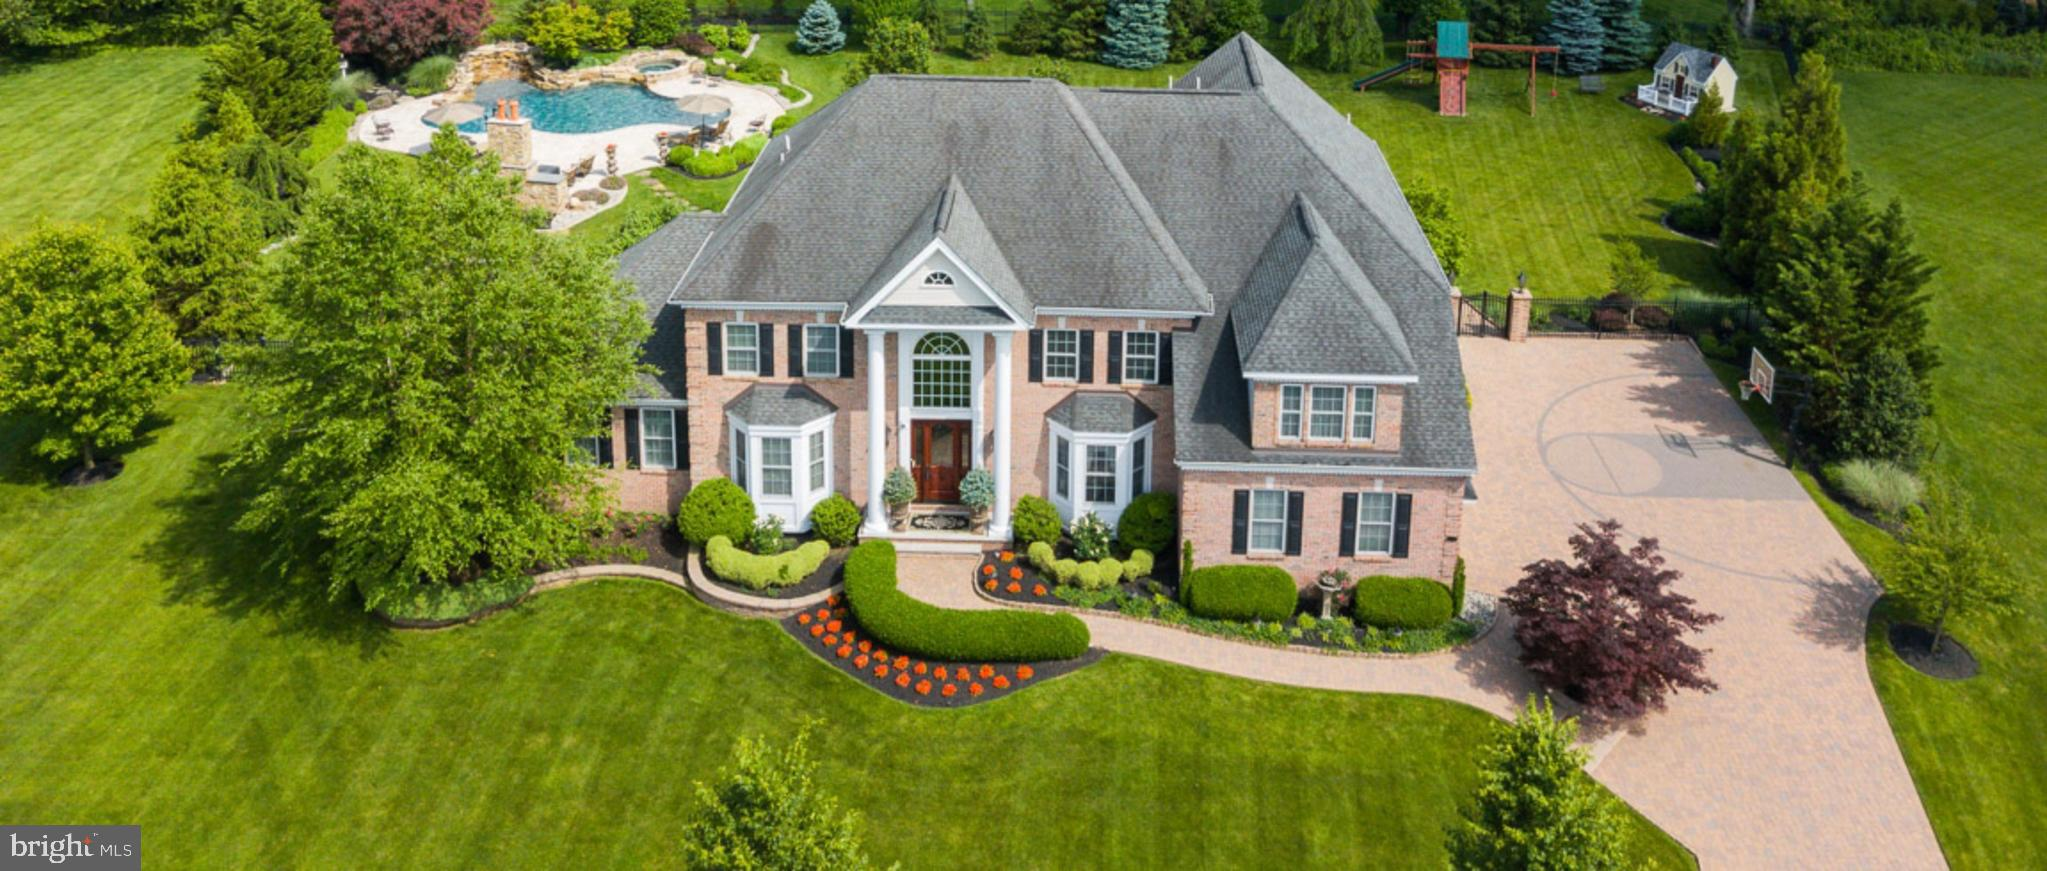 11 ALDERBERRY COURT, IVYLAND, PA 18974